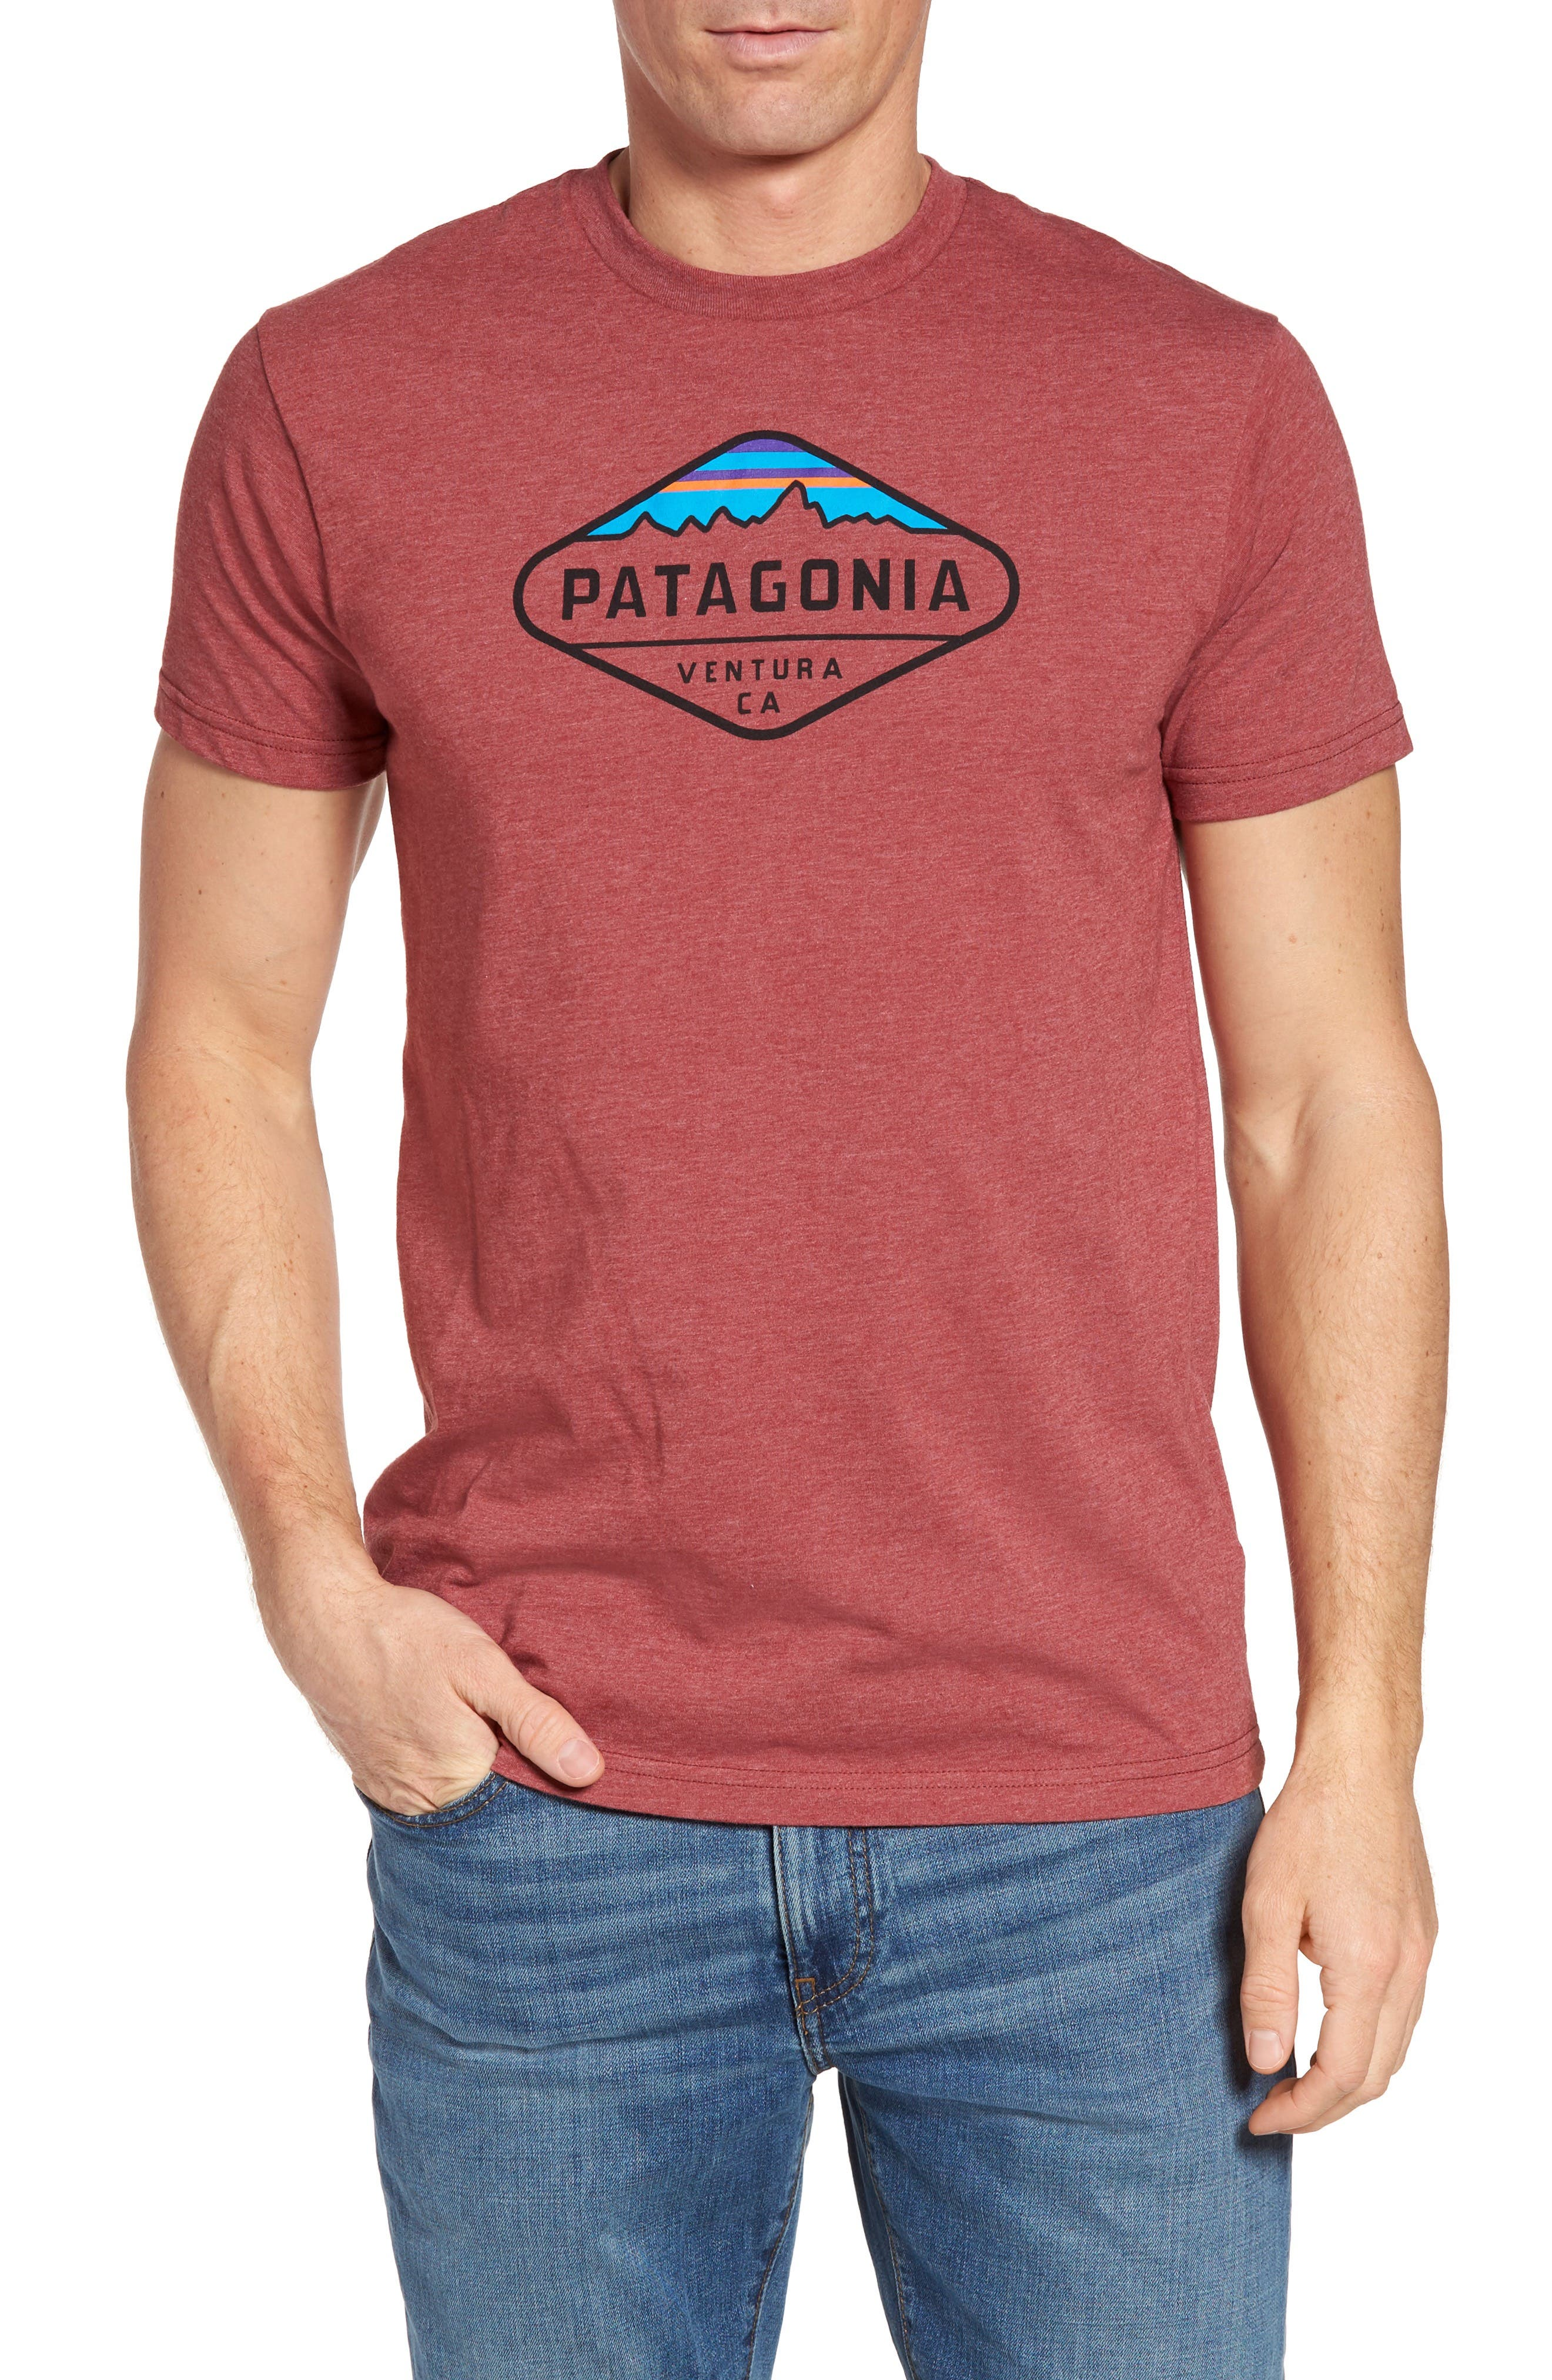 Patagonia 'Fitz Roy Crest' Slim Fit Organic Cotton Blend T-Shirt